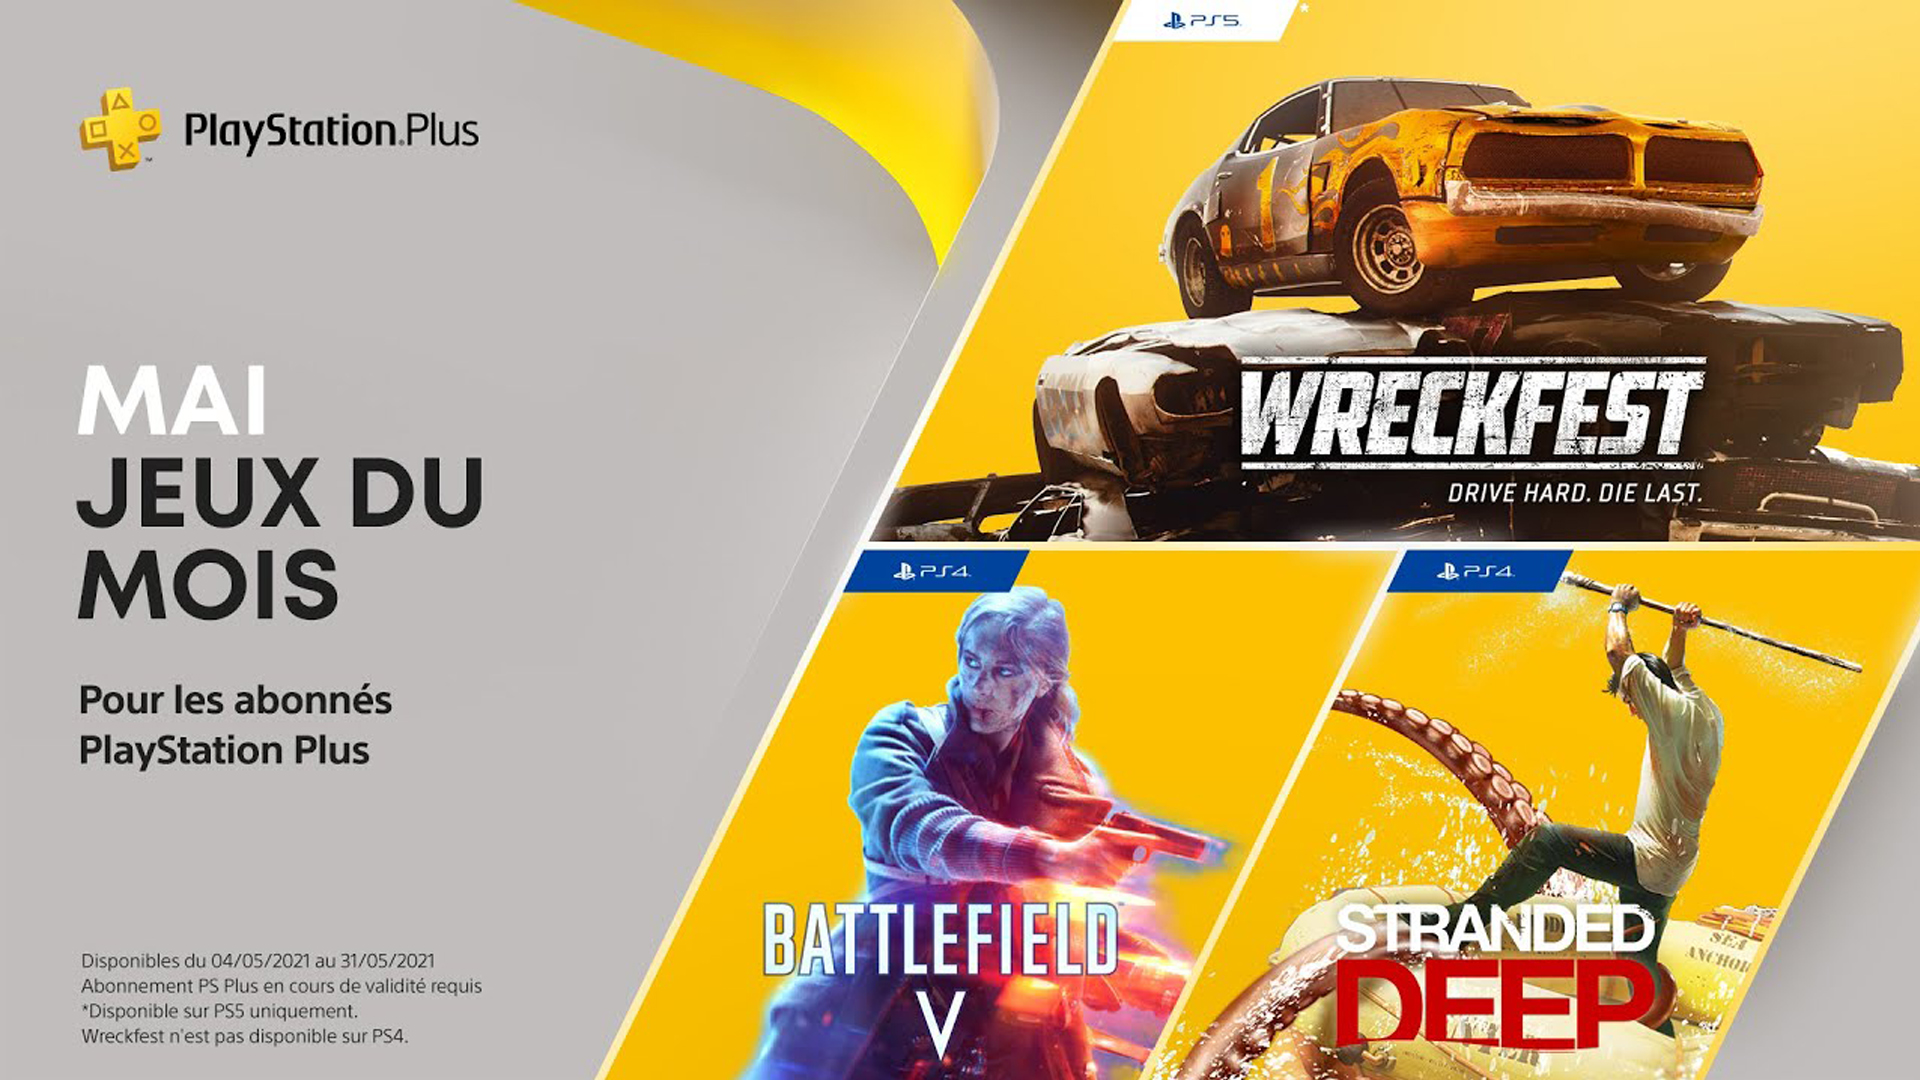 https://www.breakflip.com/uploads2/Slash/AAA/vignette-playstation-jeux-gratuits-psn-mai-2021.jpg